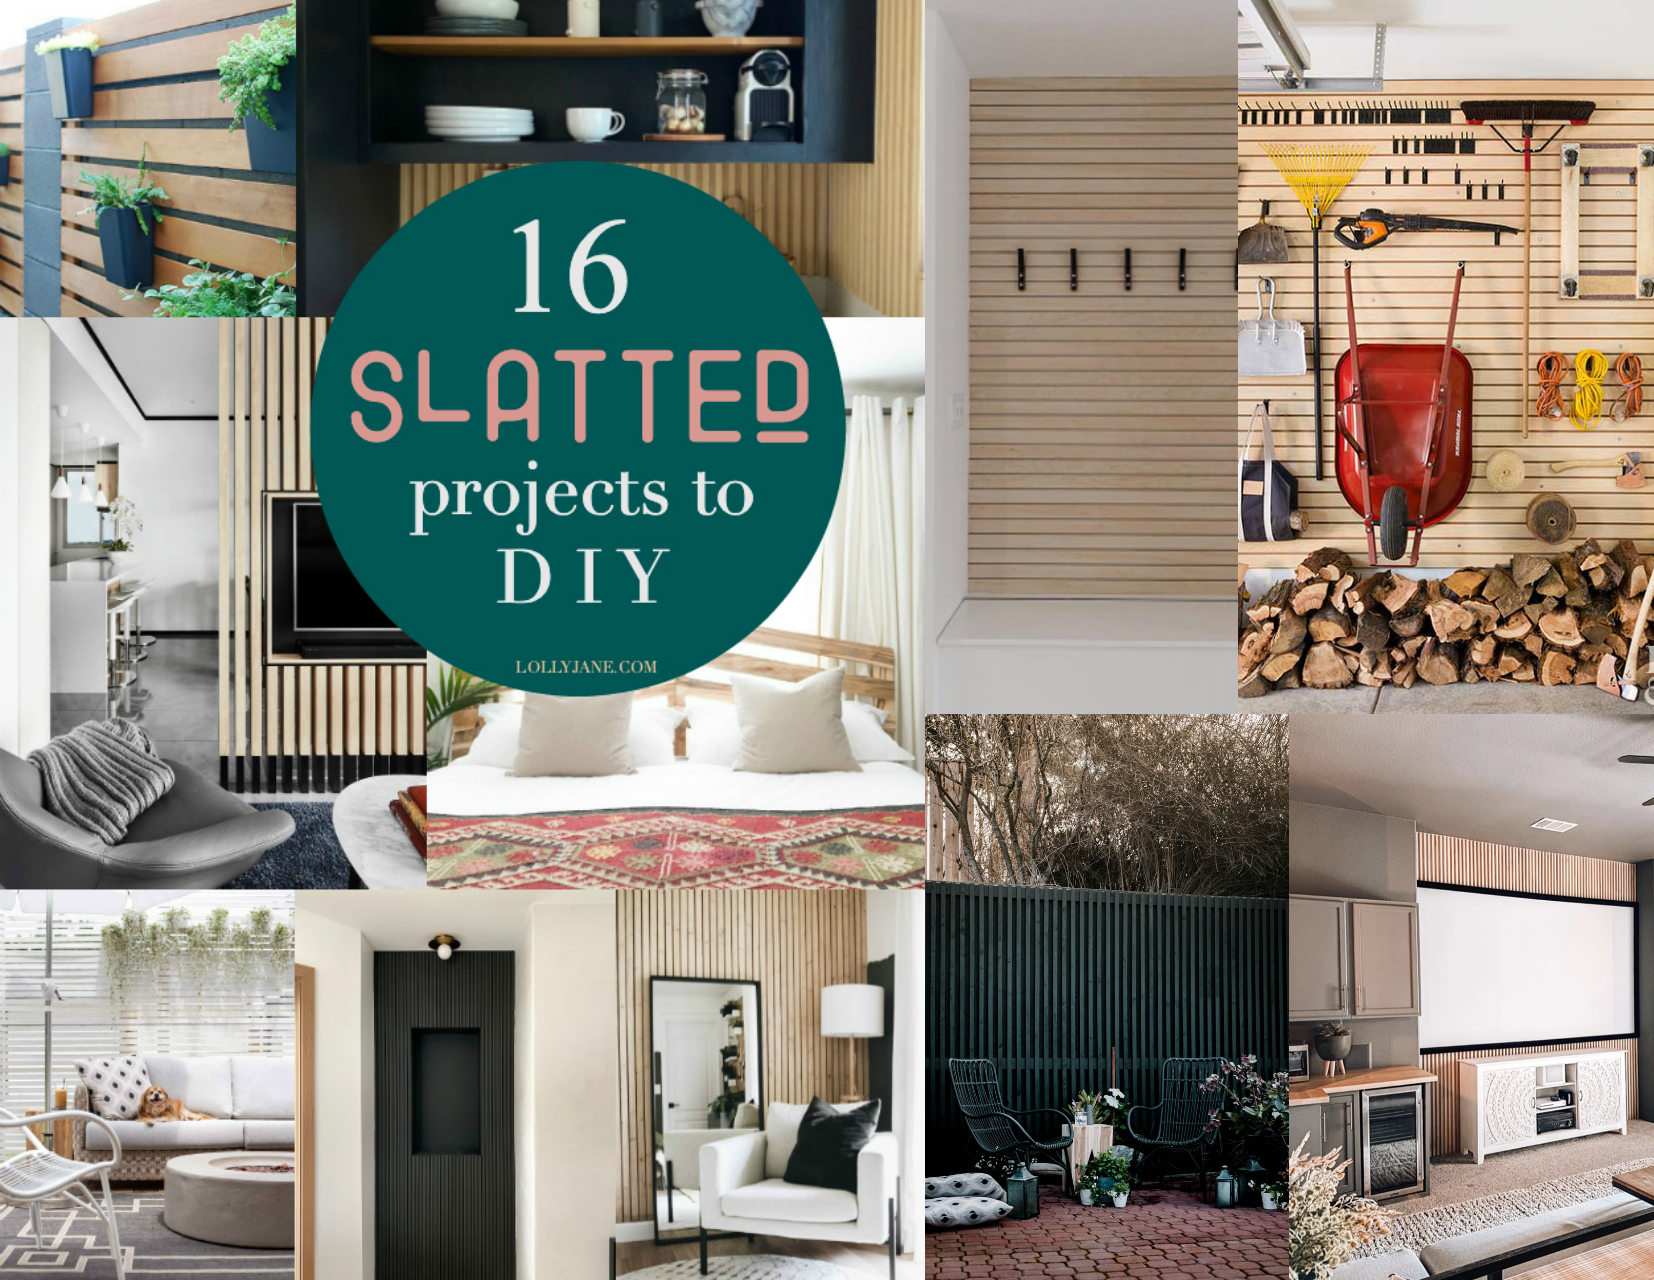 16 Slat Walls that will make you want to bust out the tools right now! Check out these trendy, modern slat wall decorating ideas that you can complete in a weekend! #slatwall #diyslatwall #slatwallideas #slatwalldecorating #diyslatwallaccentwall